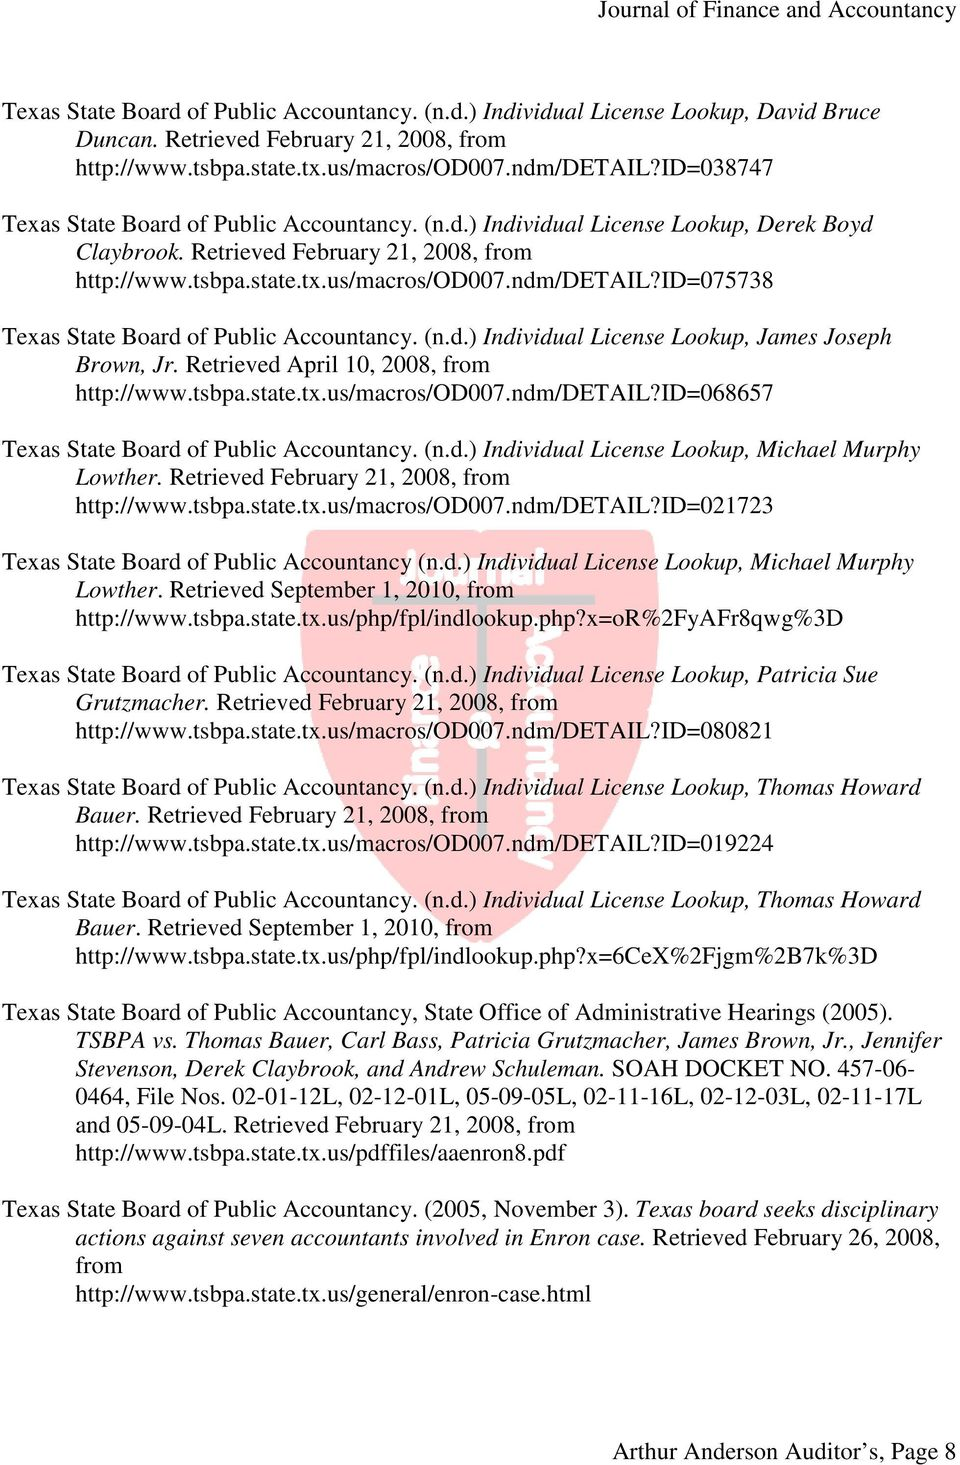 id=075738 Texas State Board of Public Accountancy. (n.d.) Individual License Lookup, James Joseph Brown, Jr. Retrieved April 10, 2008, from http://www.tsbpa.state.tx.us/macros/od007.ndm/detail?